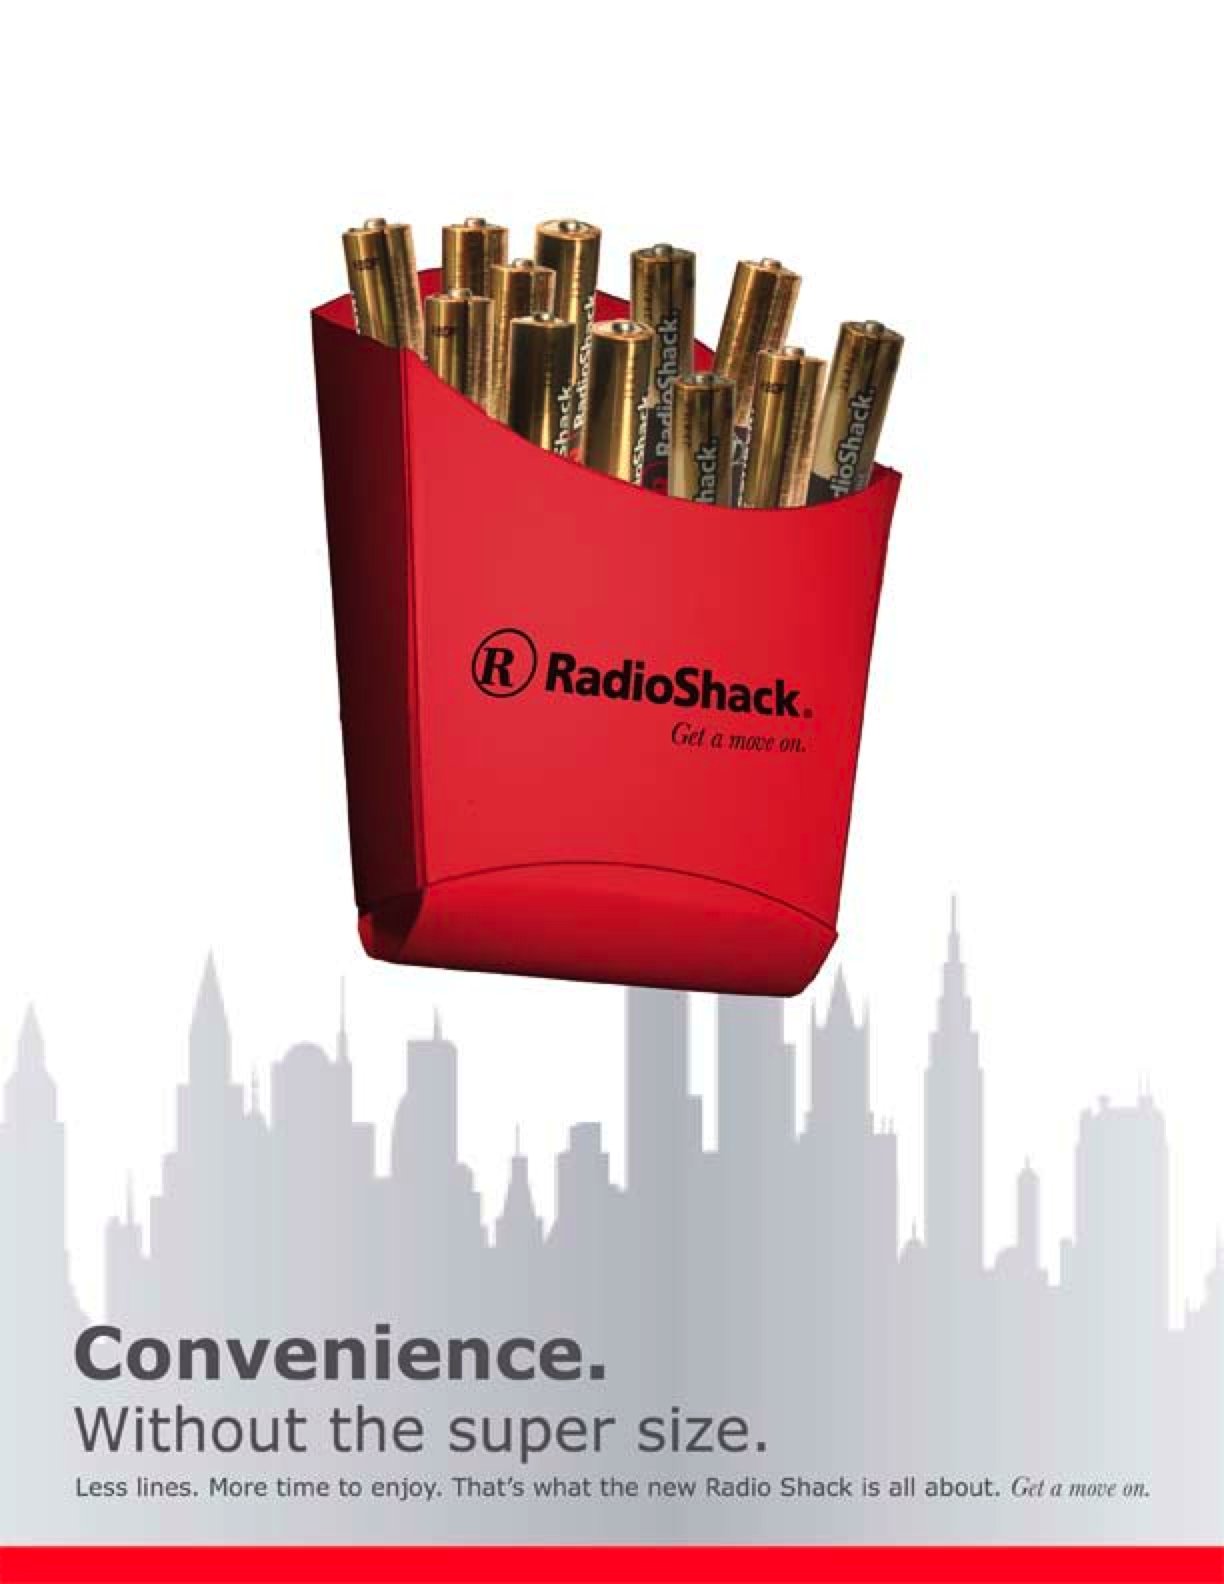 Radio Shack new campaign